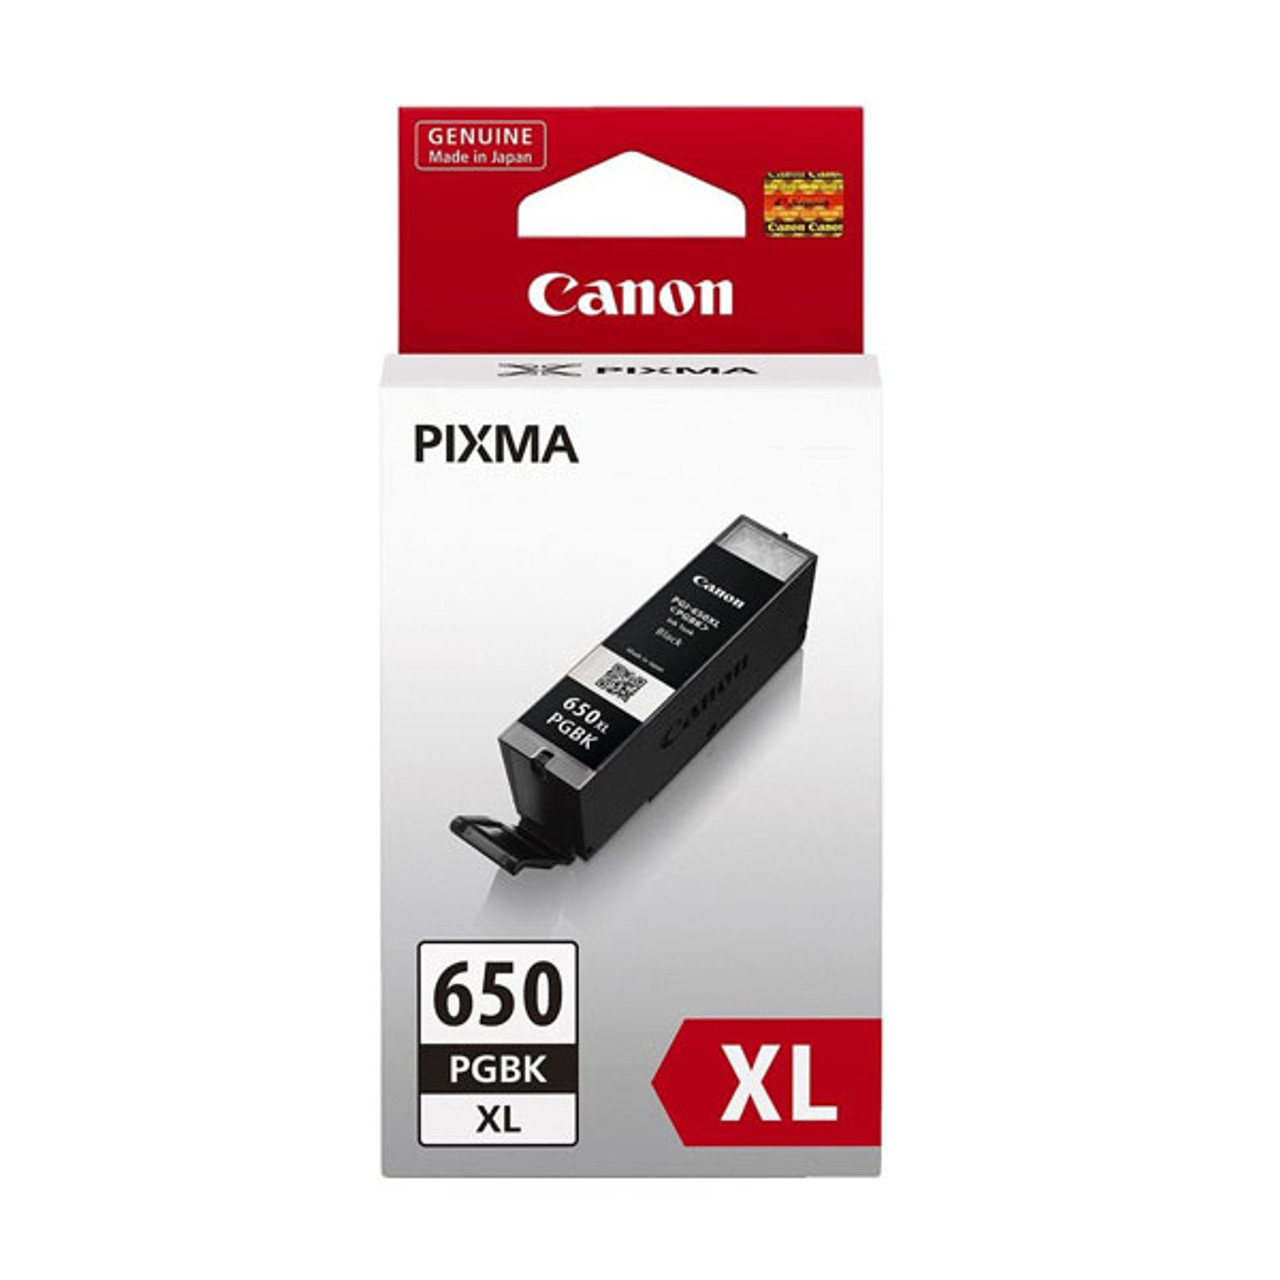 Image for Canon PGI650XL Black Ink Cart 500 A4 pages (ISO/IEC 24711) Black CX Computer Superstore